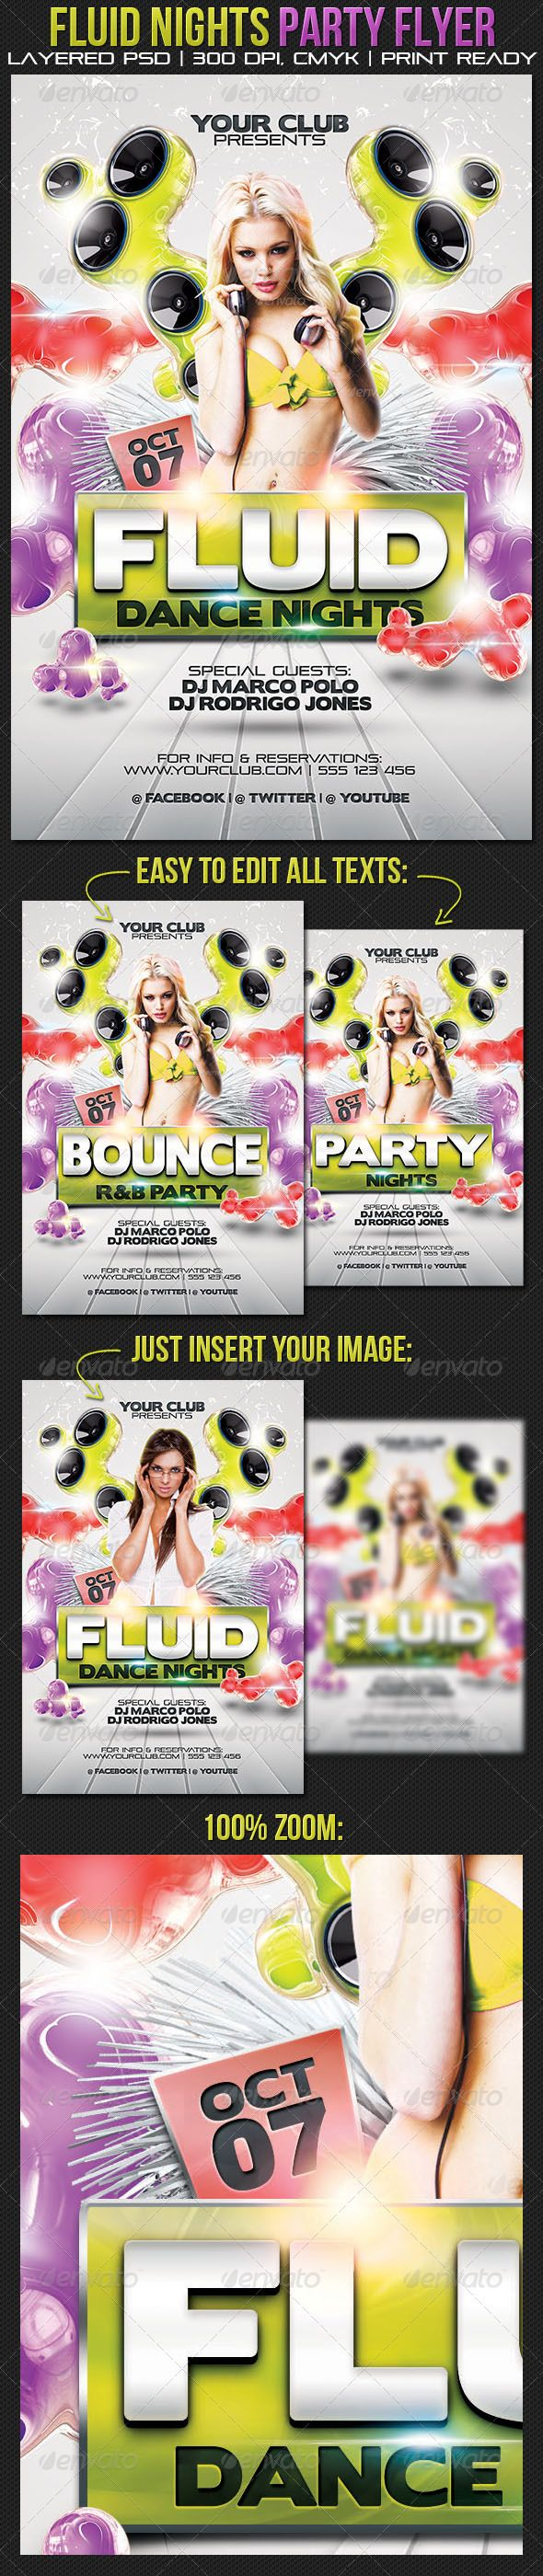 Fluid Nights Party Flyer - GraphicRiver Item for Sale